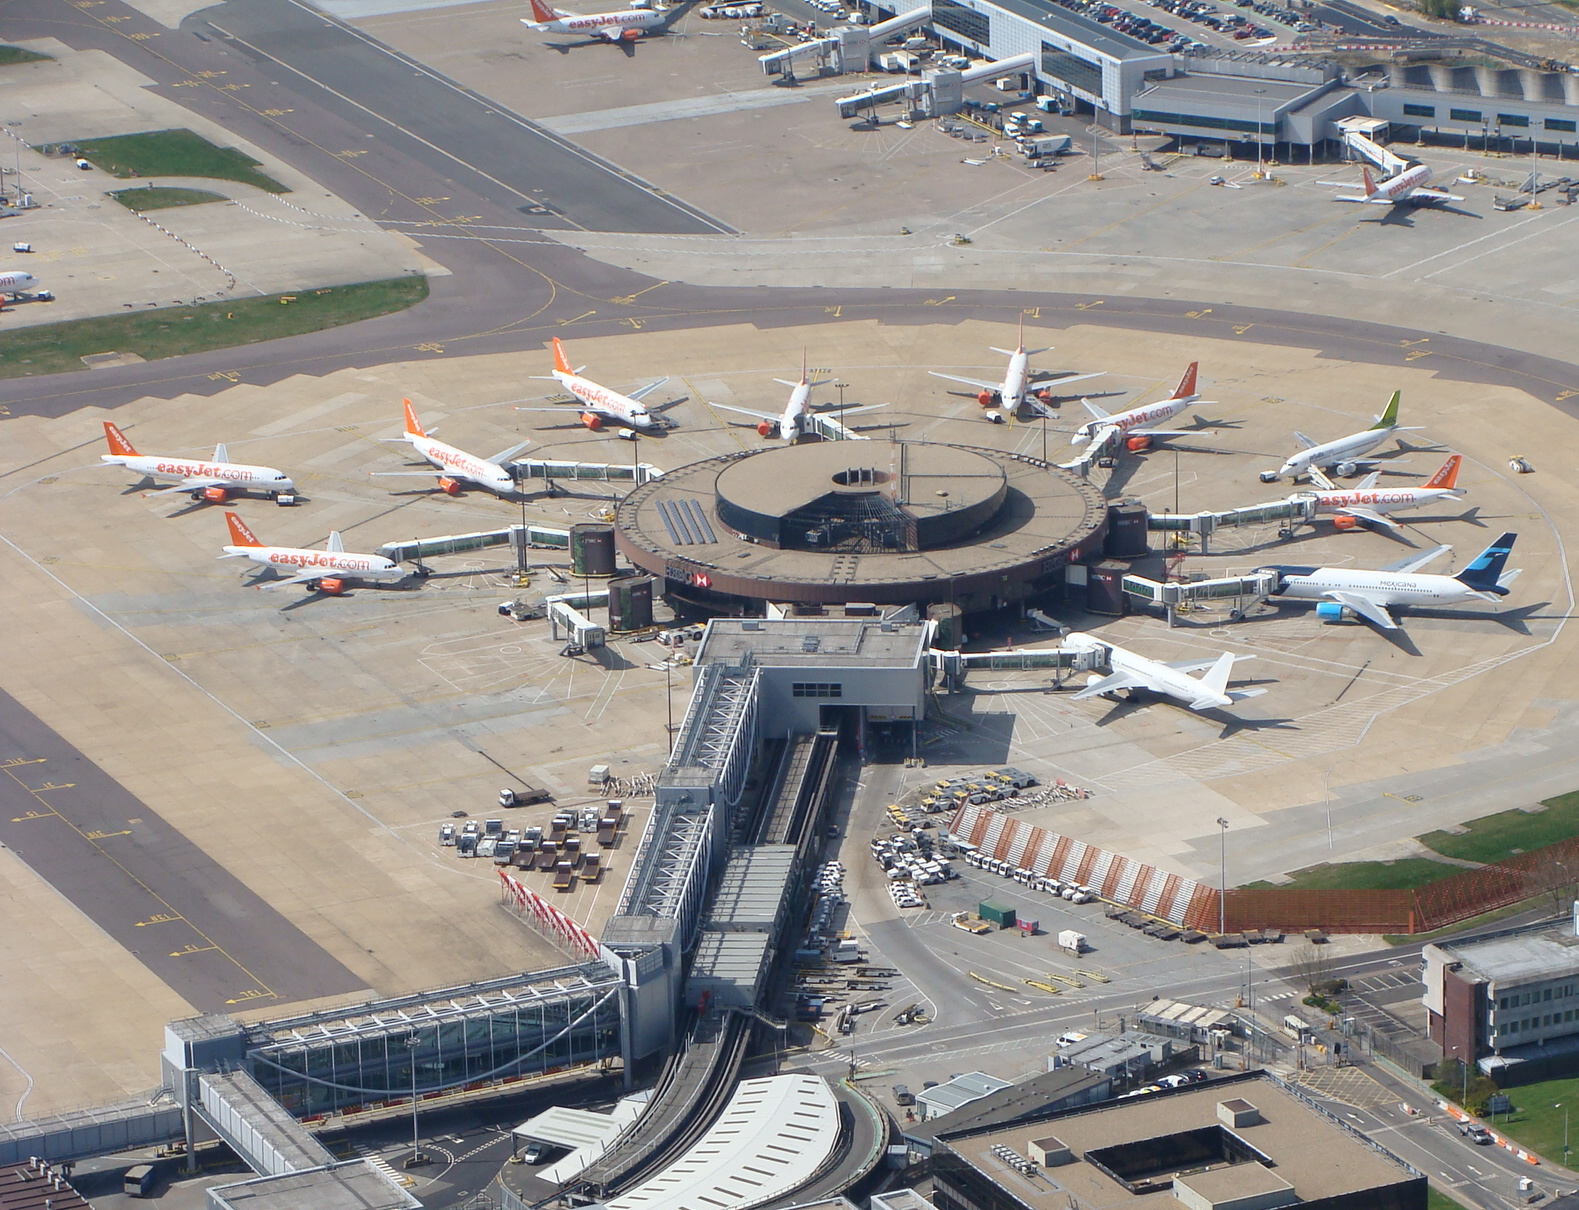 airlines standing in gatwick airport